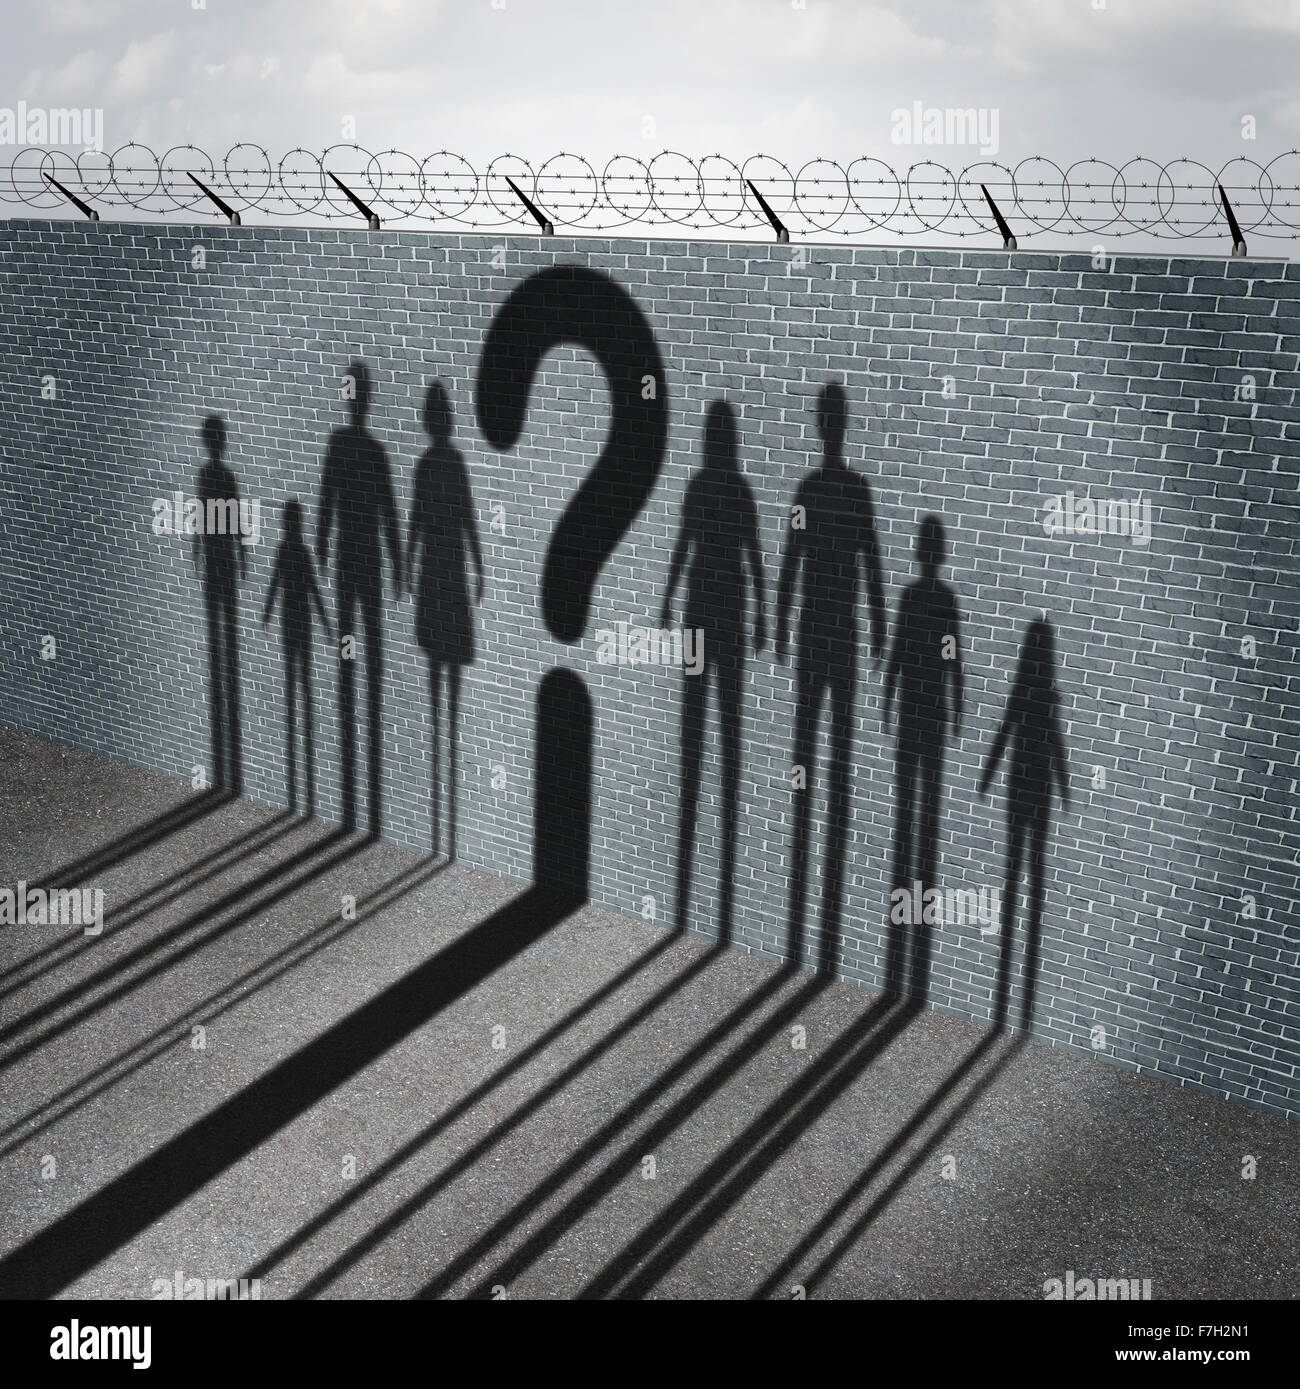 Immigration crisis as foreign people on a border wall for a social issue about refugees or illegal immigrants with - Stock Image